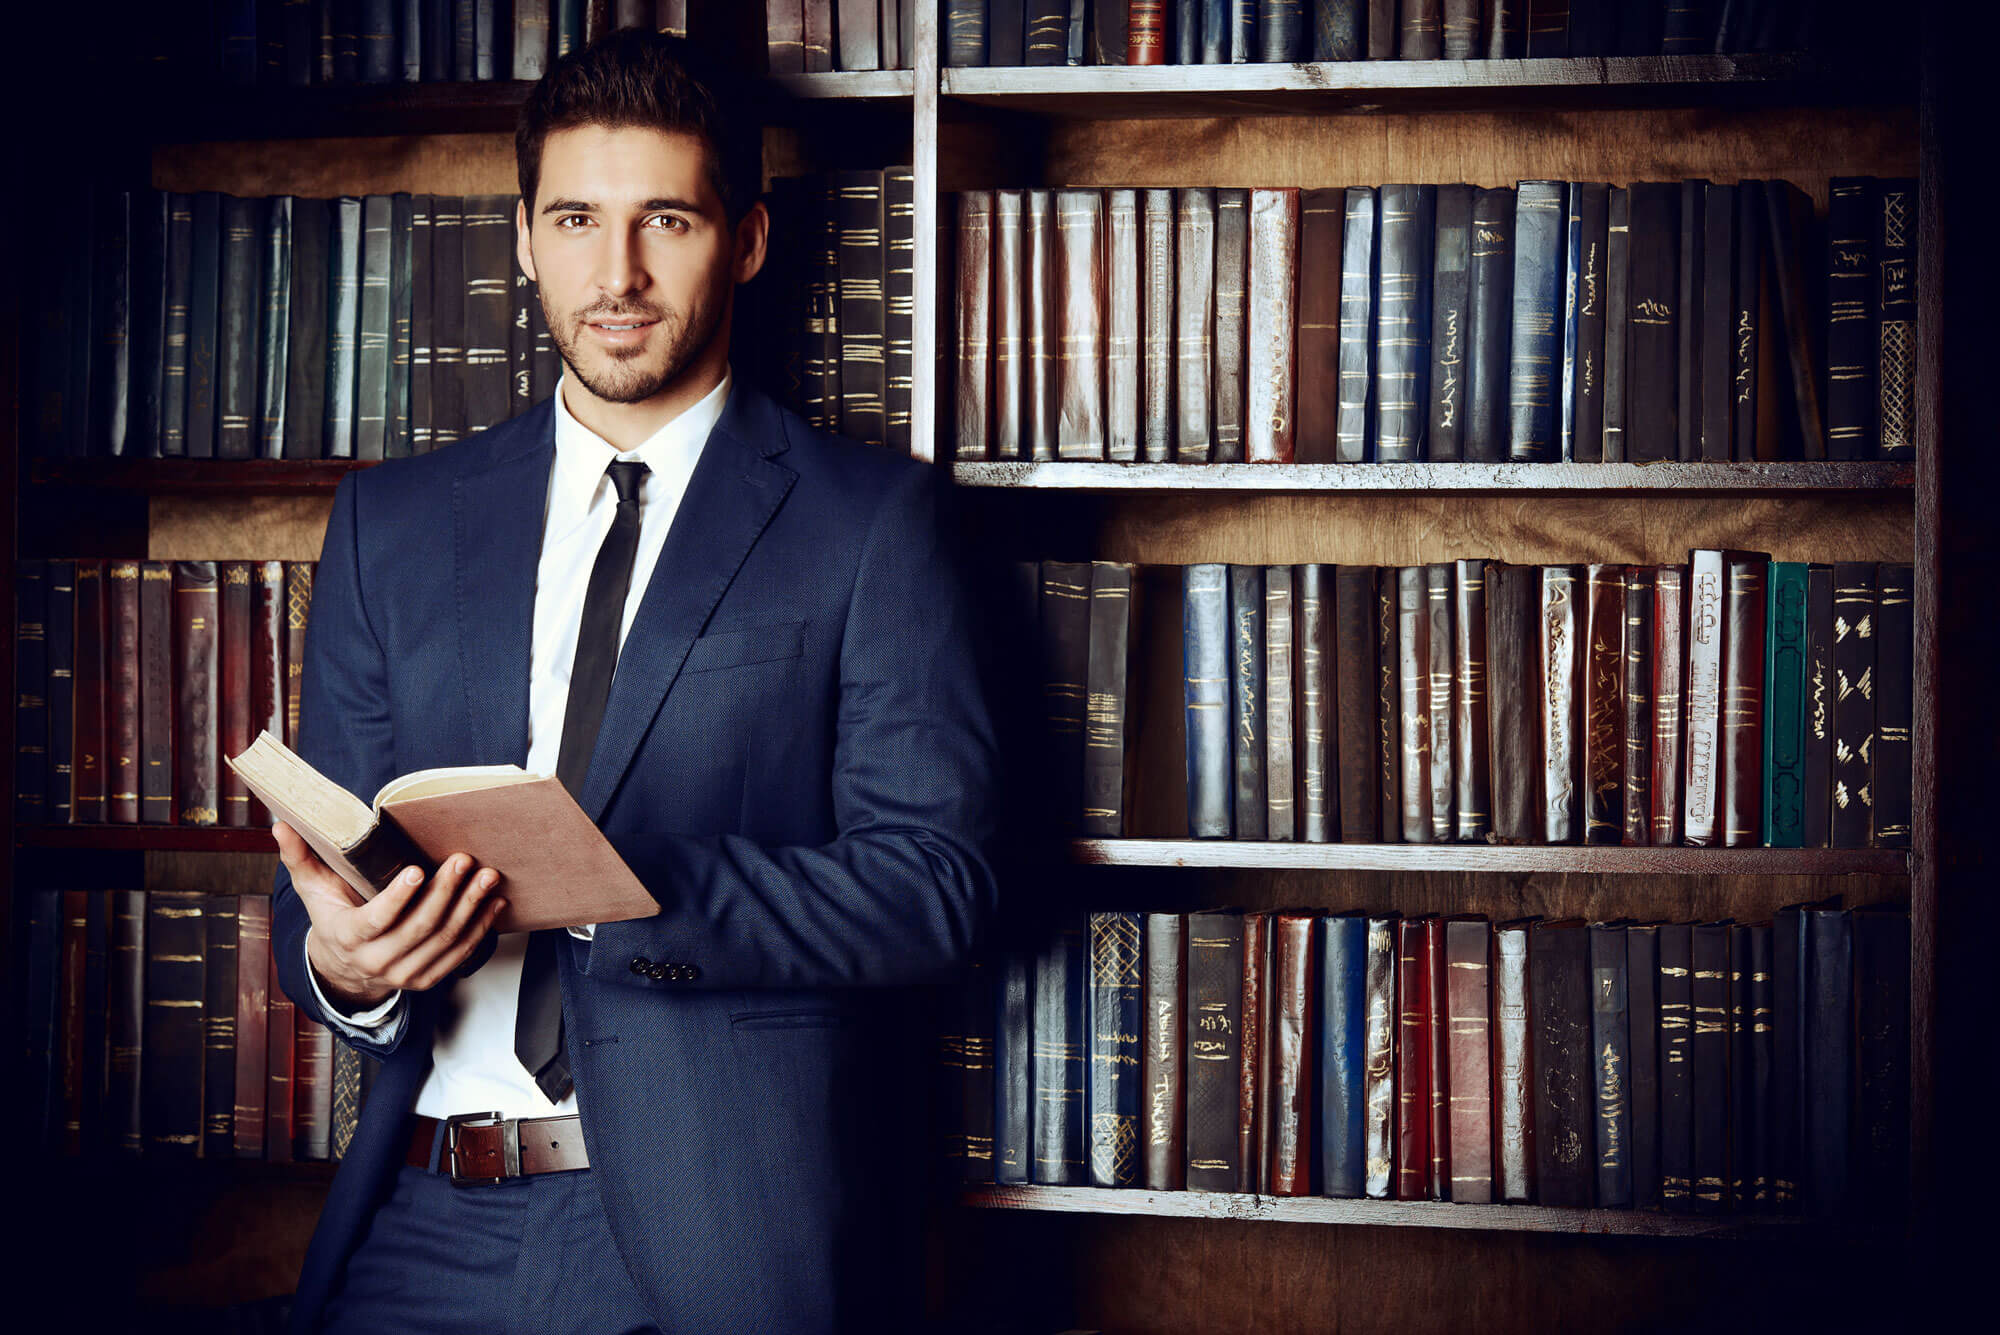 13 of the best self help books for men | irreverent gent